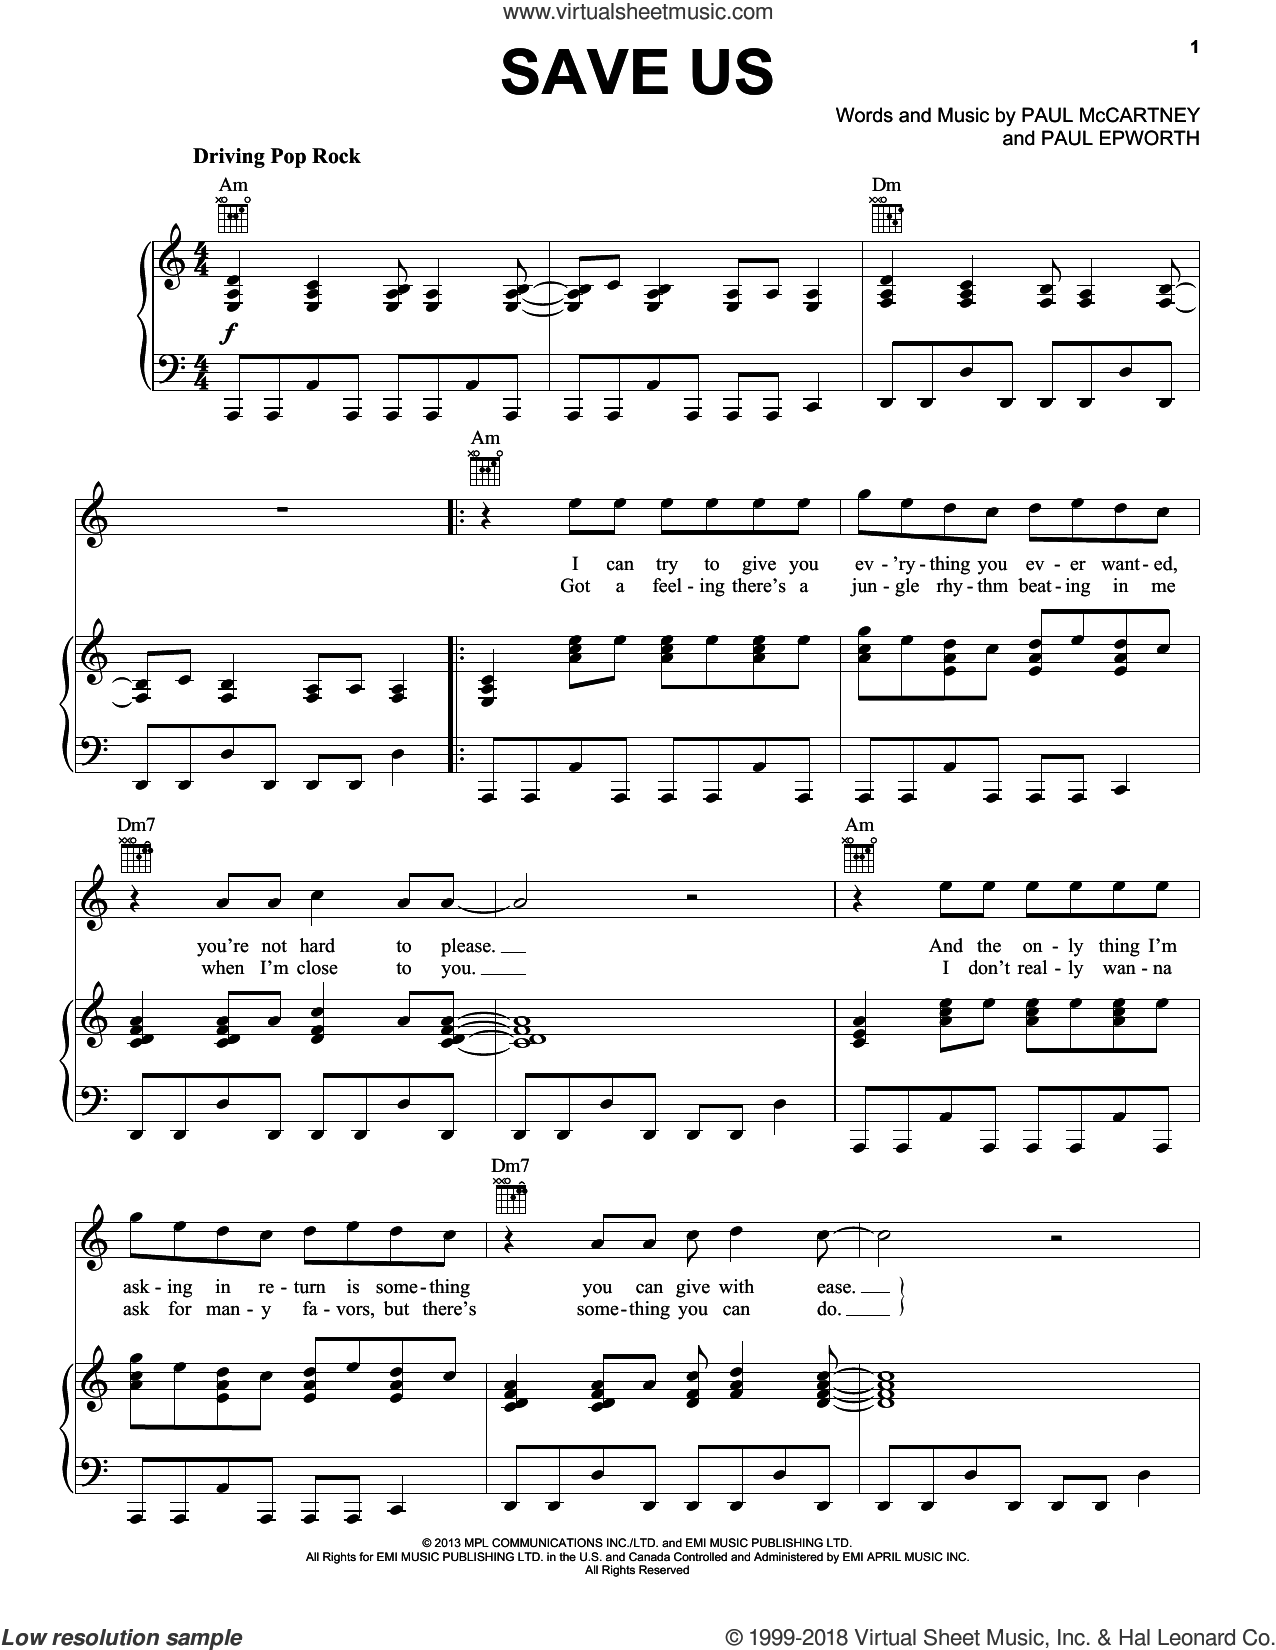 Save Us sheet music for voice, piano or guitar by Paul McCartney and Paul Epworth, intermediate skill level